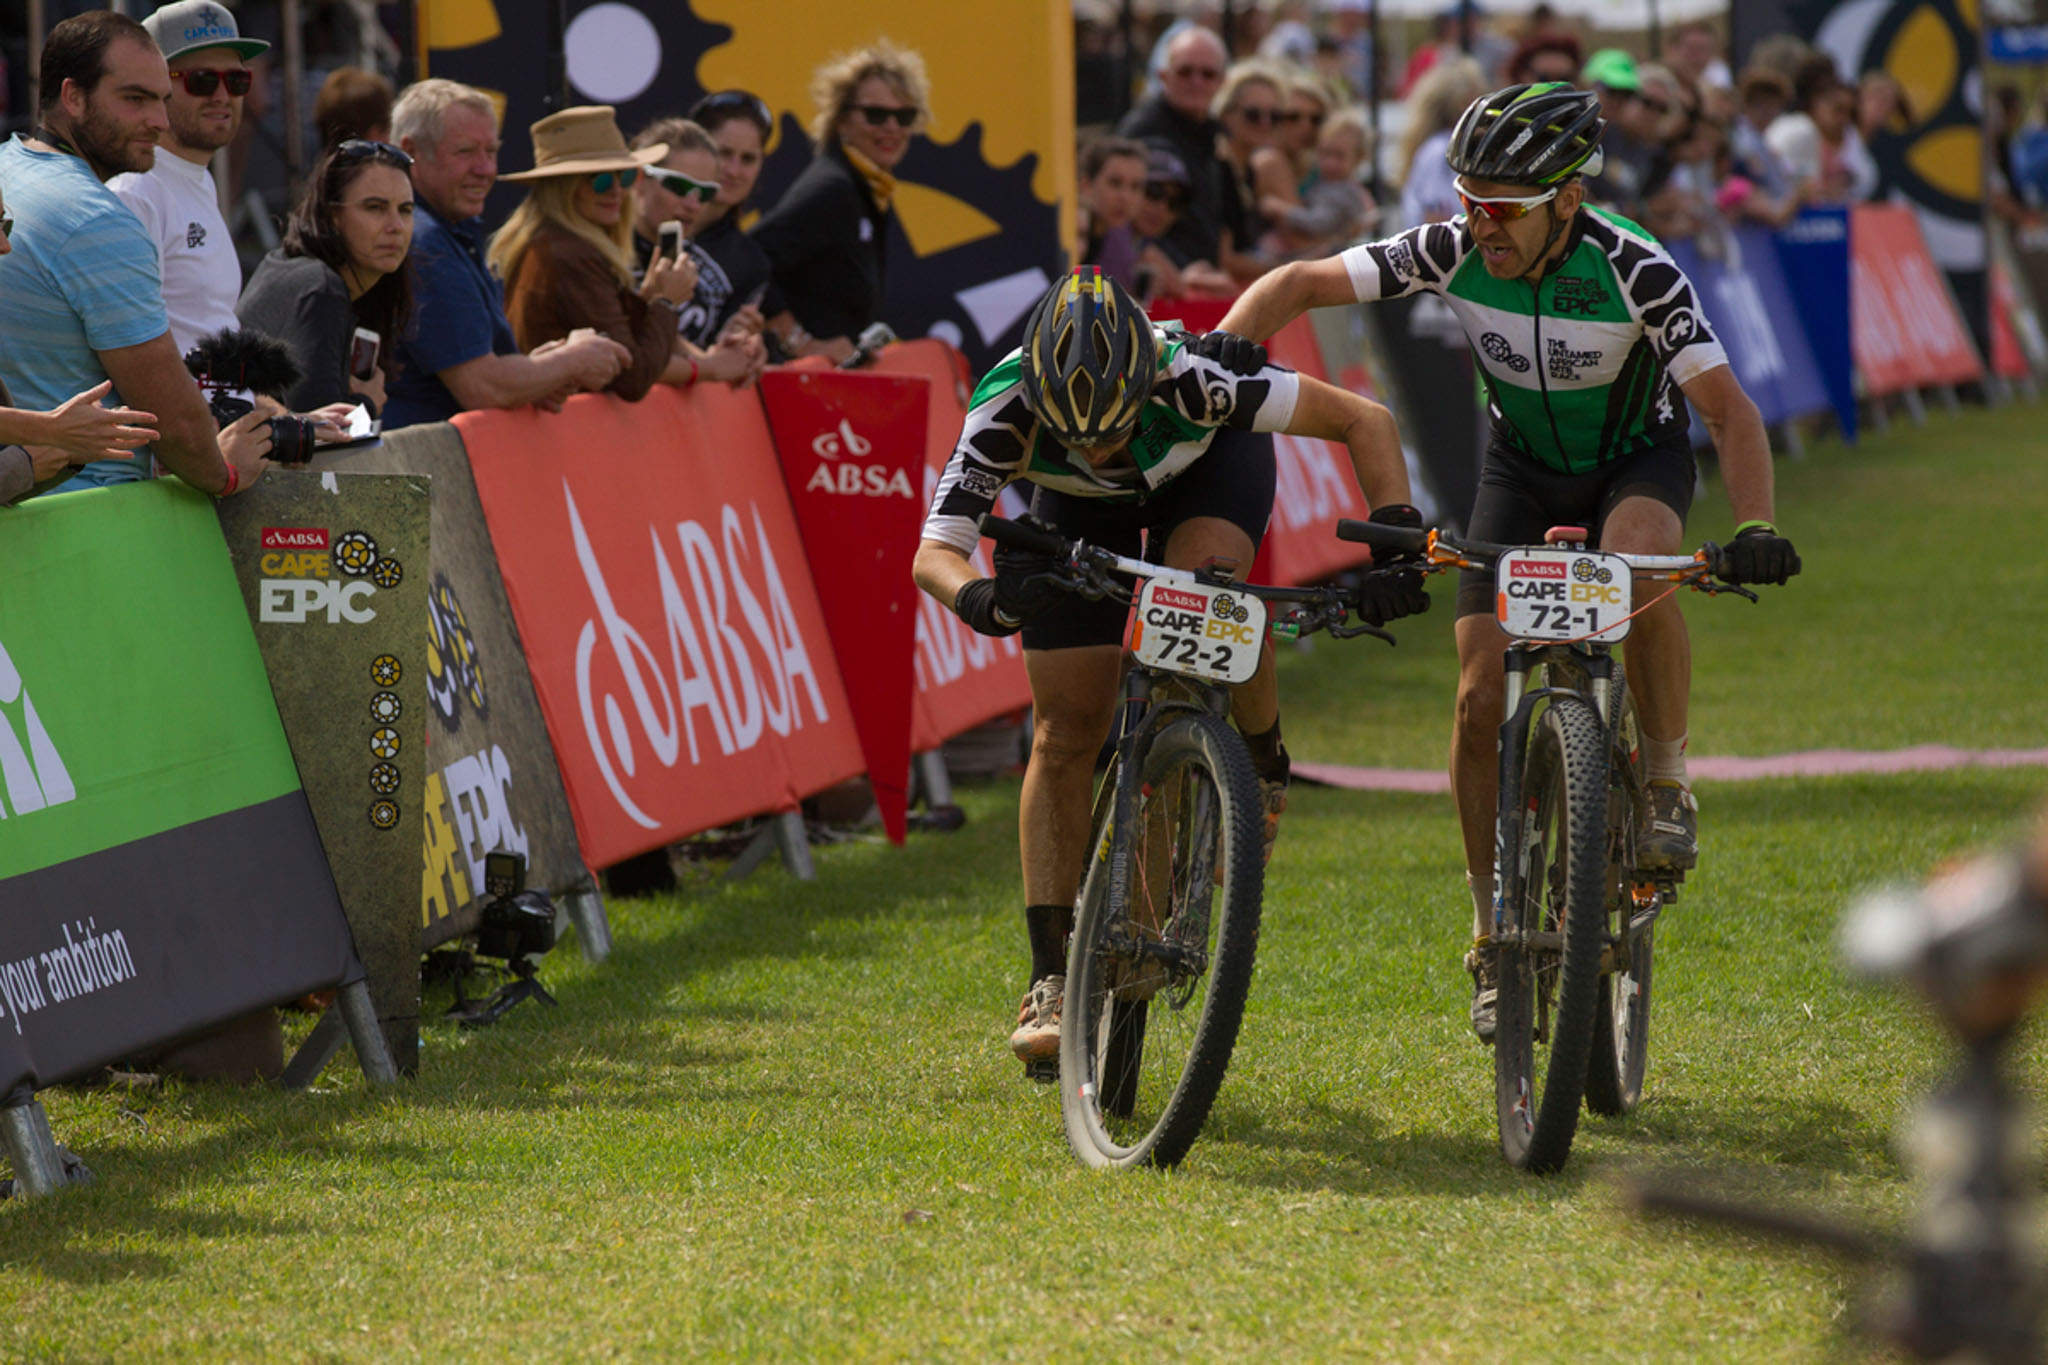 An exhausted Fanny Bourdon finishes with partner Jean-Francois Bossler after winning the Green Mixed Jersey during the final stage (stage 7) of the 2016 Absa Cape Epic Mountain Bike stage race from Boschendal in Stellenbosch to Meerendal Wine Estate in Durbanville, South Africa on the 20th March 2016 Photo by Gary Perkin/Cape Epic/SPORTZPICS PLEASE ENSURE THE APPROPRIATE CREDIT IS GIVEN TO THE PHOTOGRAPHER AND SPORTZPICS ALONG WITH THE ABSA CAPE EPIC ace2016